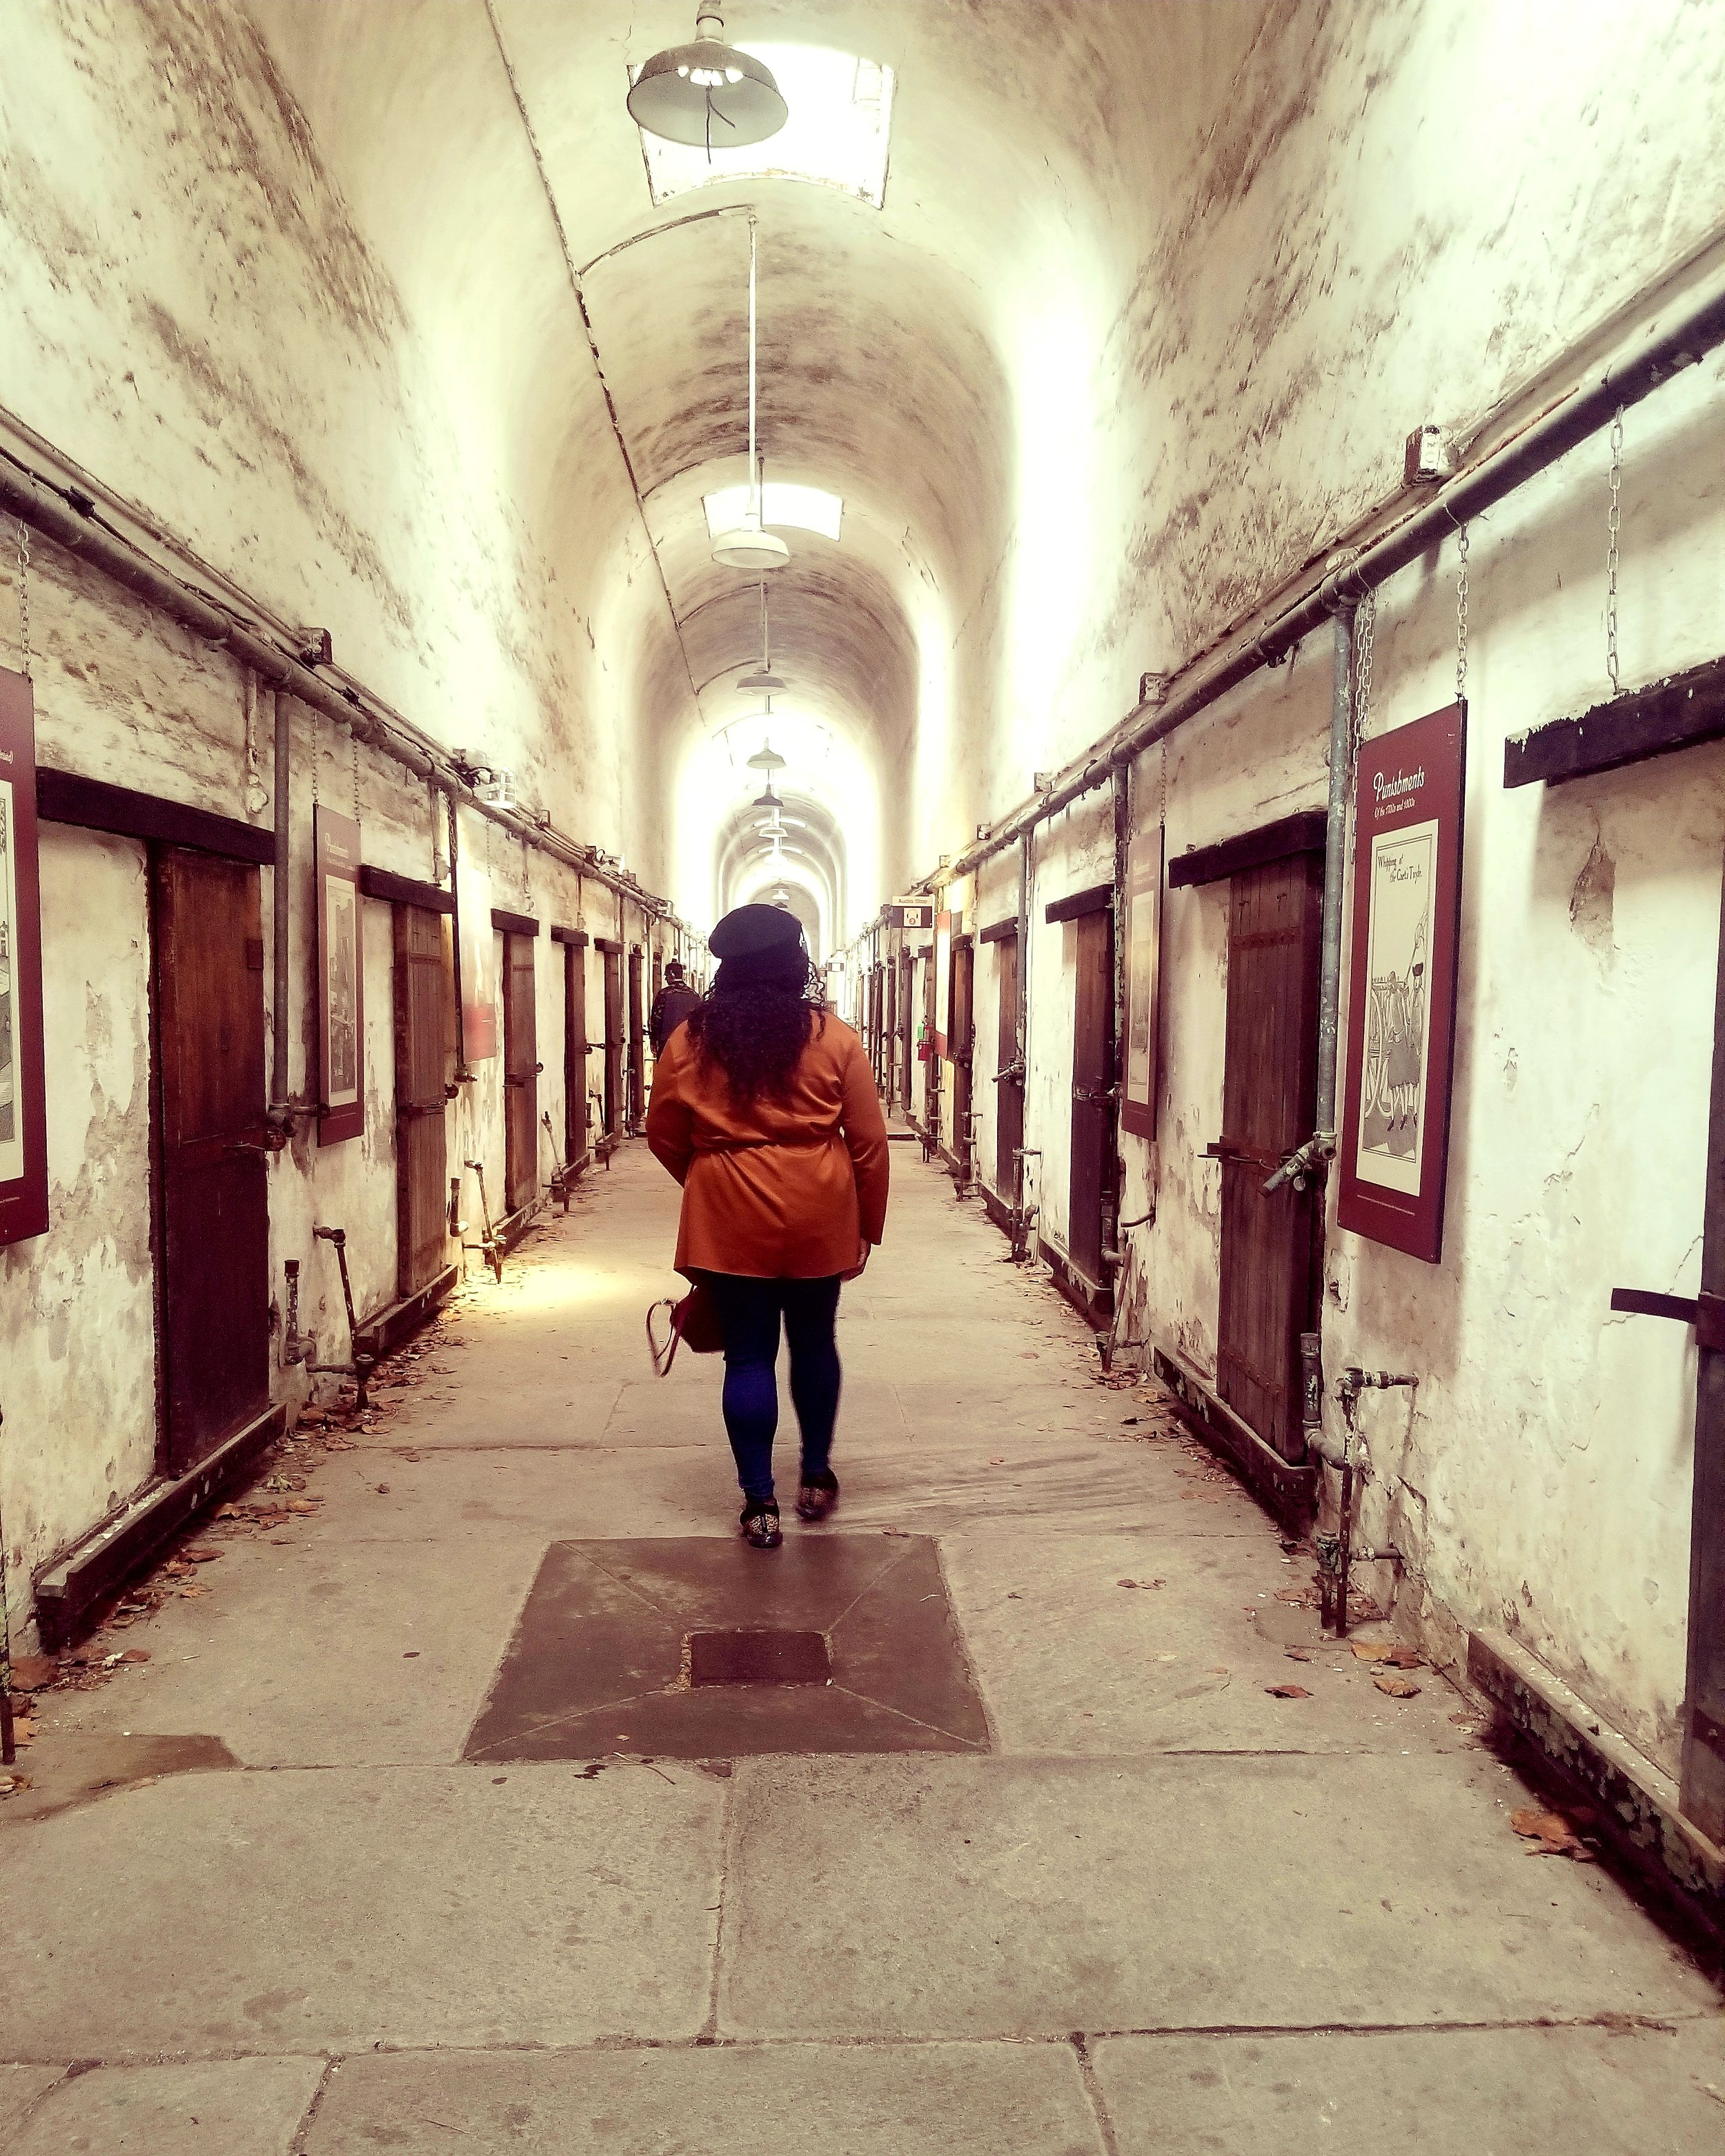 The Eastern State Penitentiary was the first penitentiary in the U.S.. The tour is audio guided, all you have to do is enter the number at each spot to hear the history. The entire tour takes about 1.5 hours to 2 hours to finish if you listen entirely and stop at each spot. The location is supposedly haunted, but I didn't get that feeling.